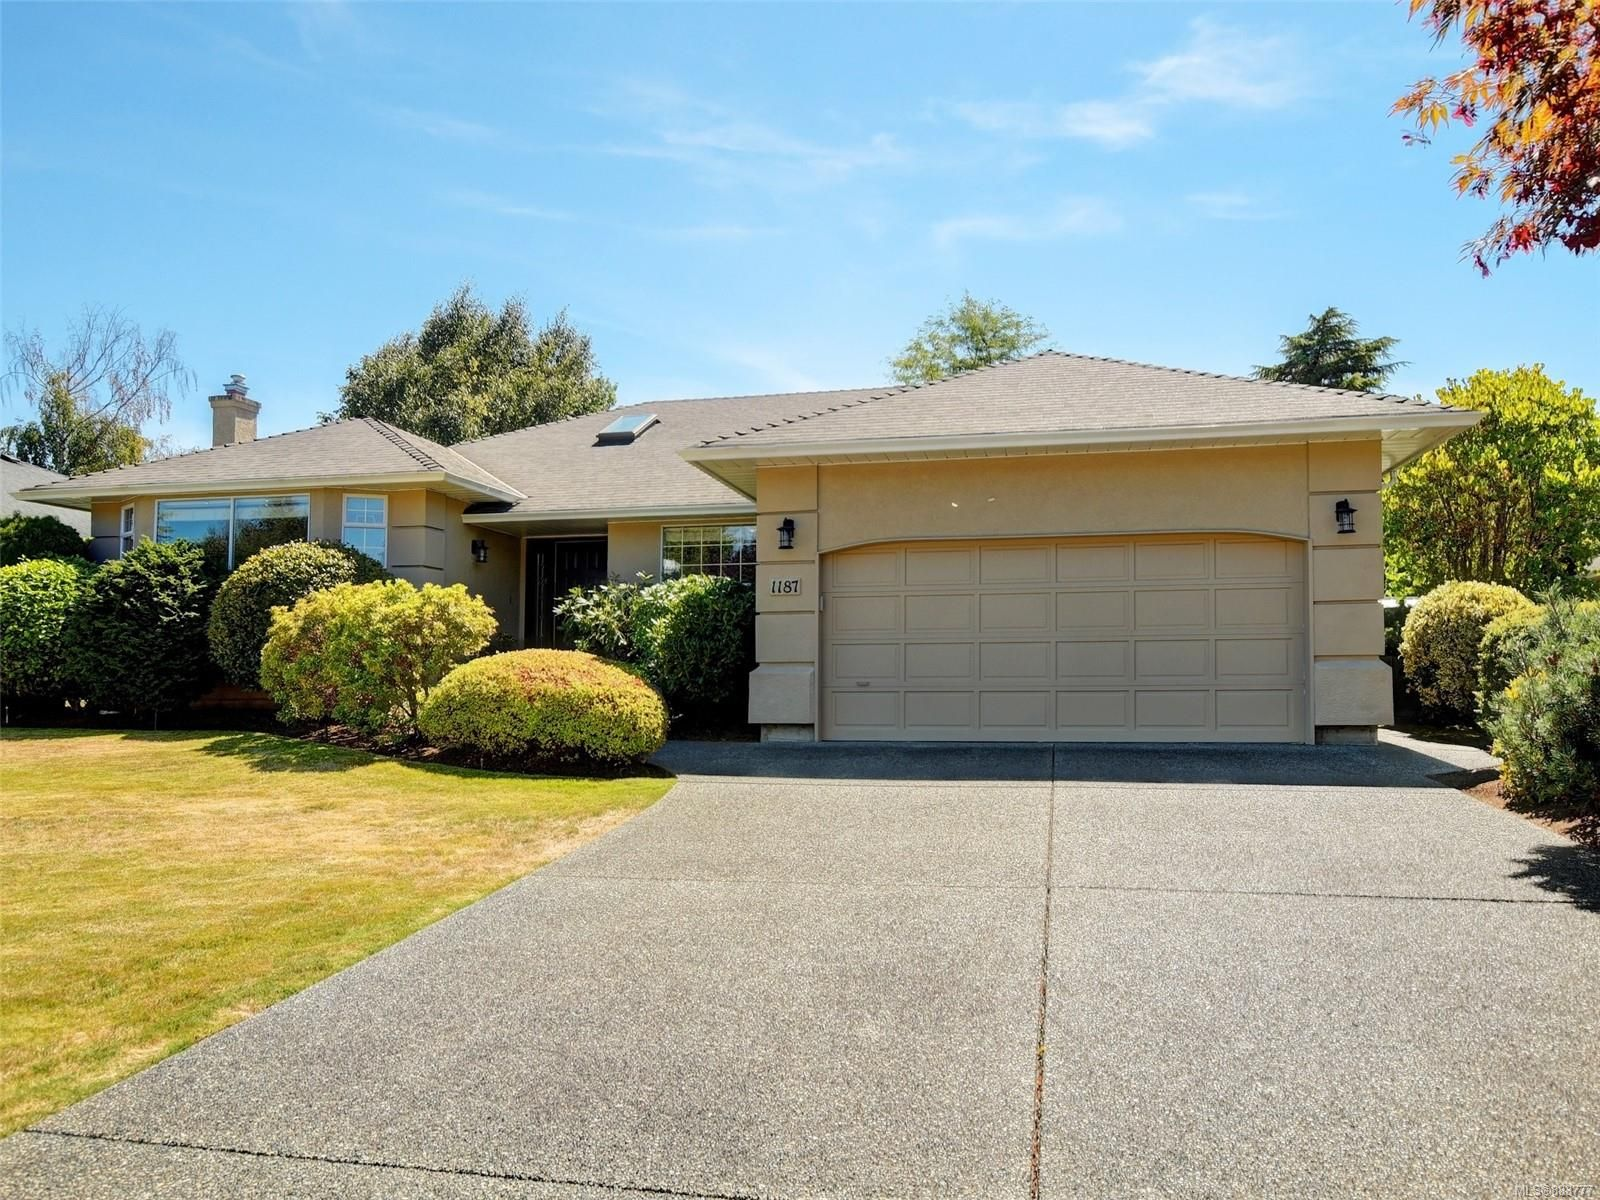 Main Photo: 1187 SLOAN Terr in : SE Sunnymead House for sale (Saanich East)  : MLS®# 883777